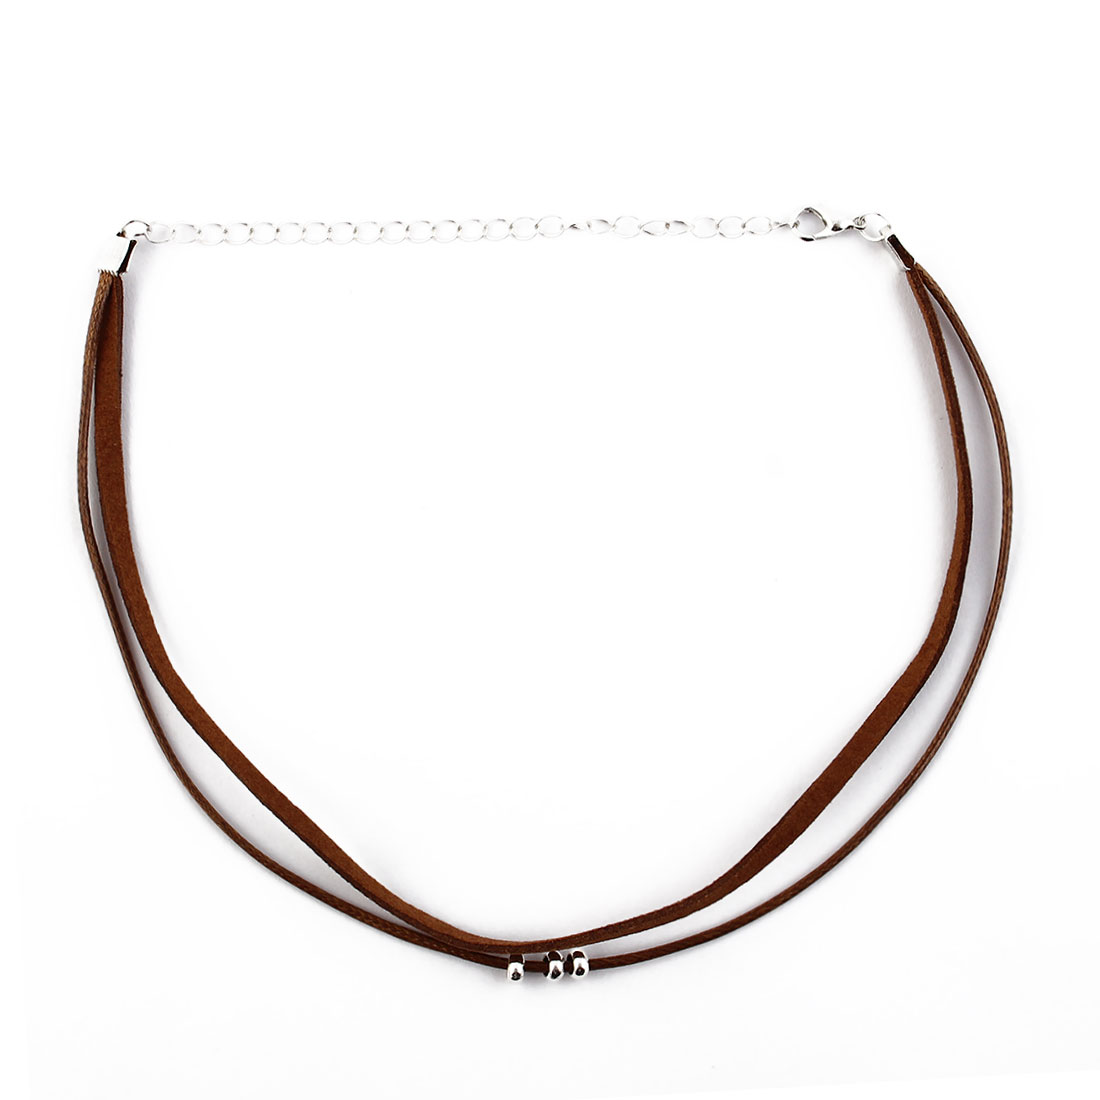 Women Lady Nylon Beads Decor Lobster Clasp Adjustable Choker Necklace Neck Chain Brown